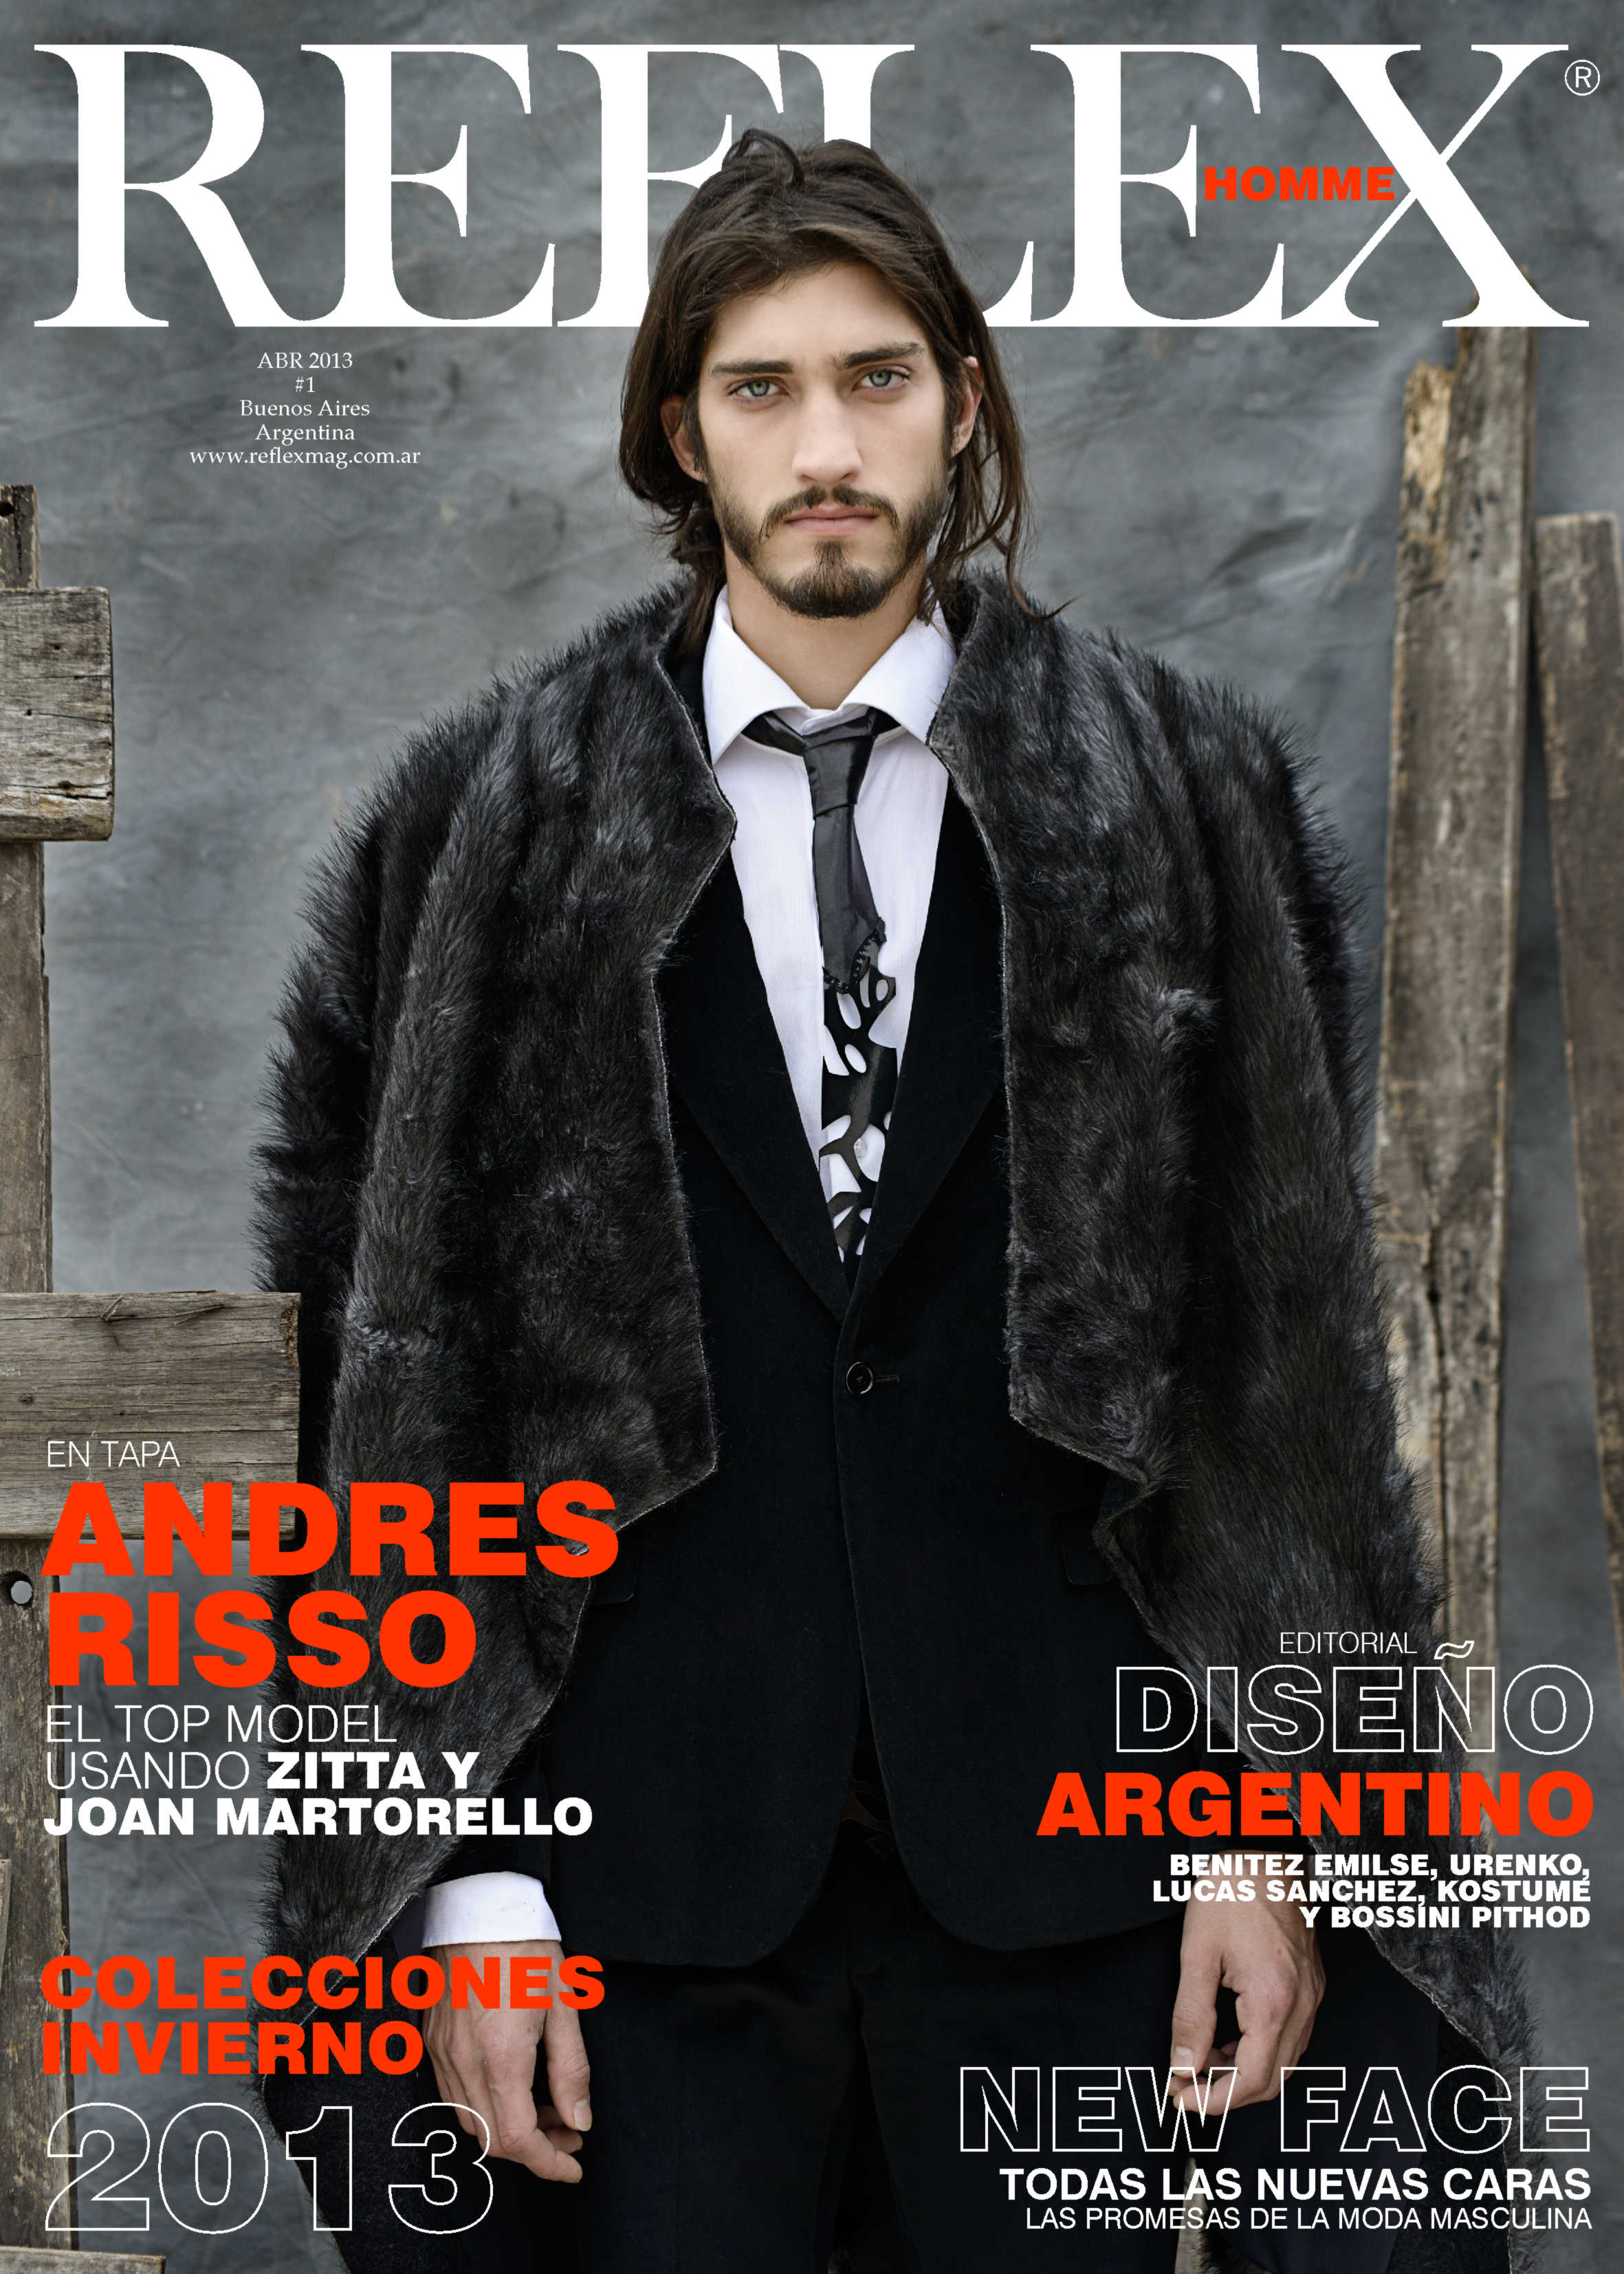 Andres Risso Covers Reflex Homme's Debut Issue